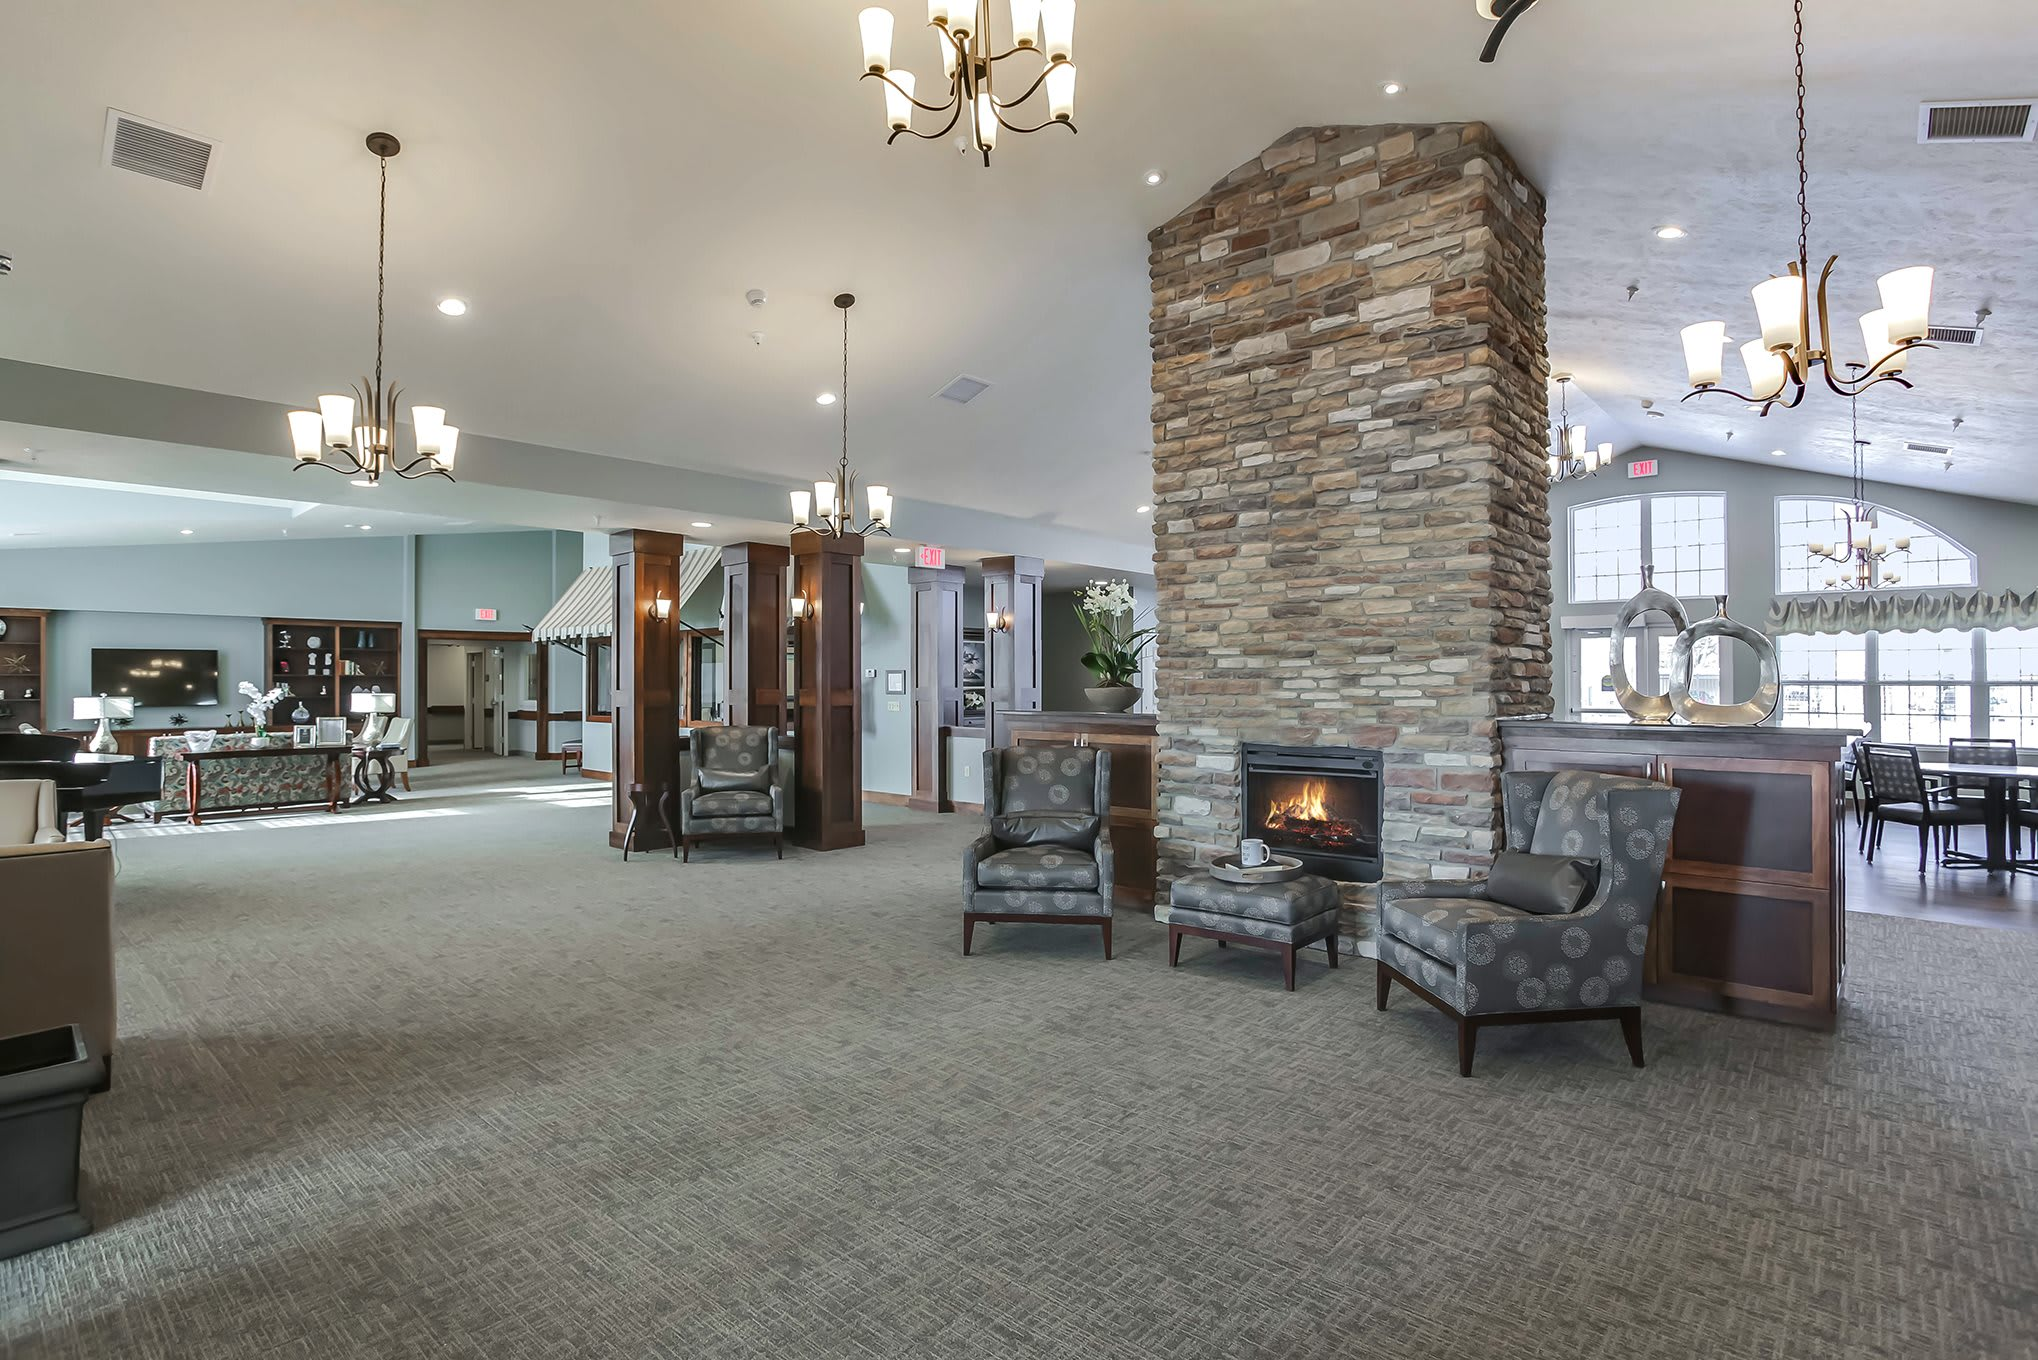 Photo 1 of Grand Village Assisted Living & Memory Care